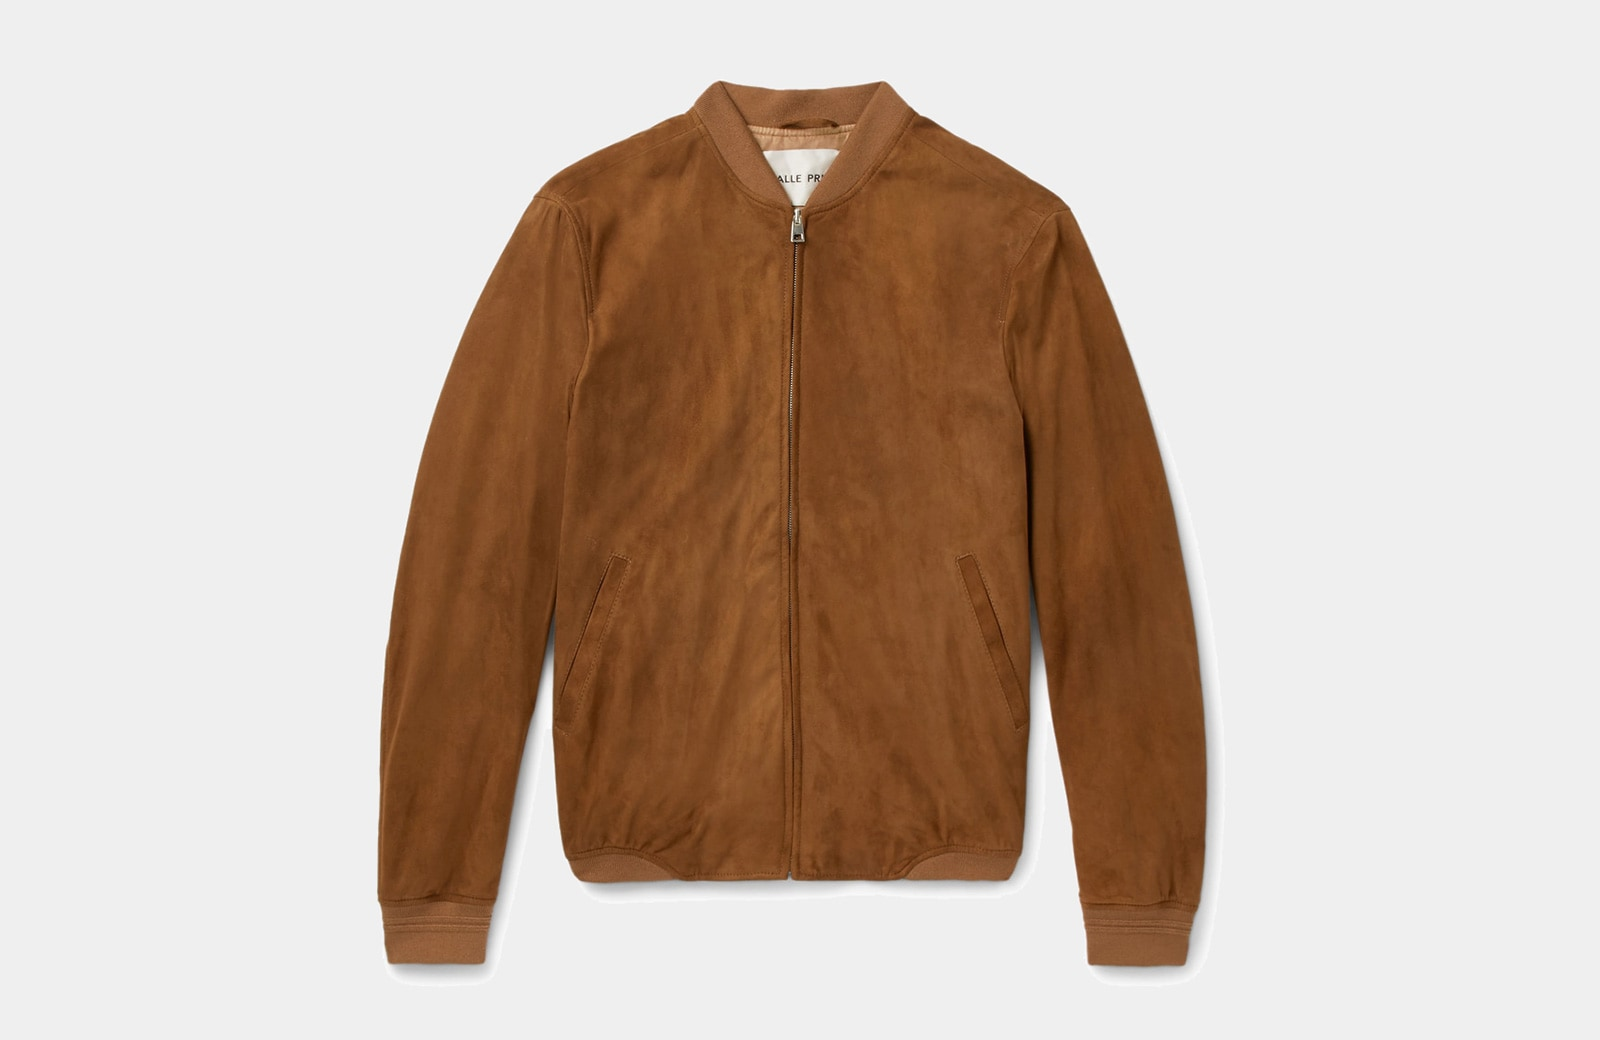 best tan bomber jacket men Salle Privee luxury style - Luxe Digital